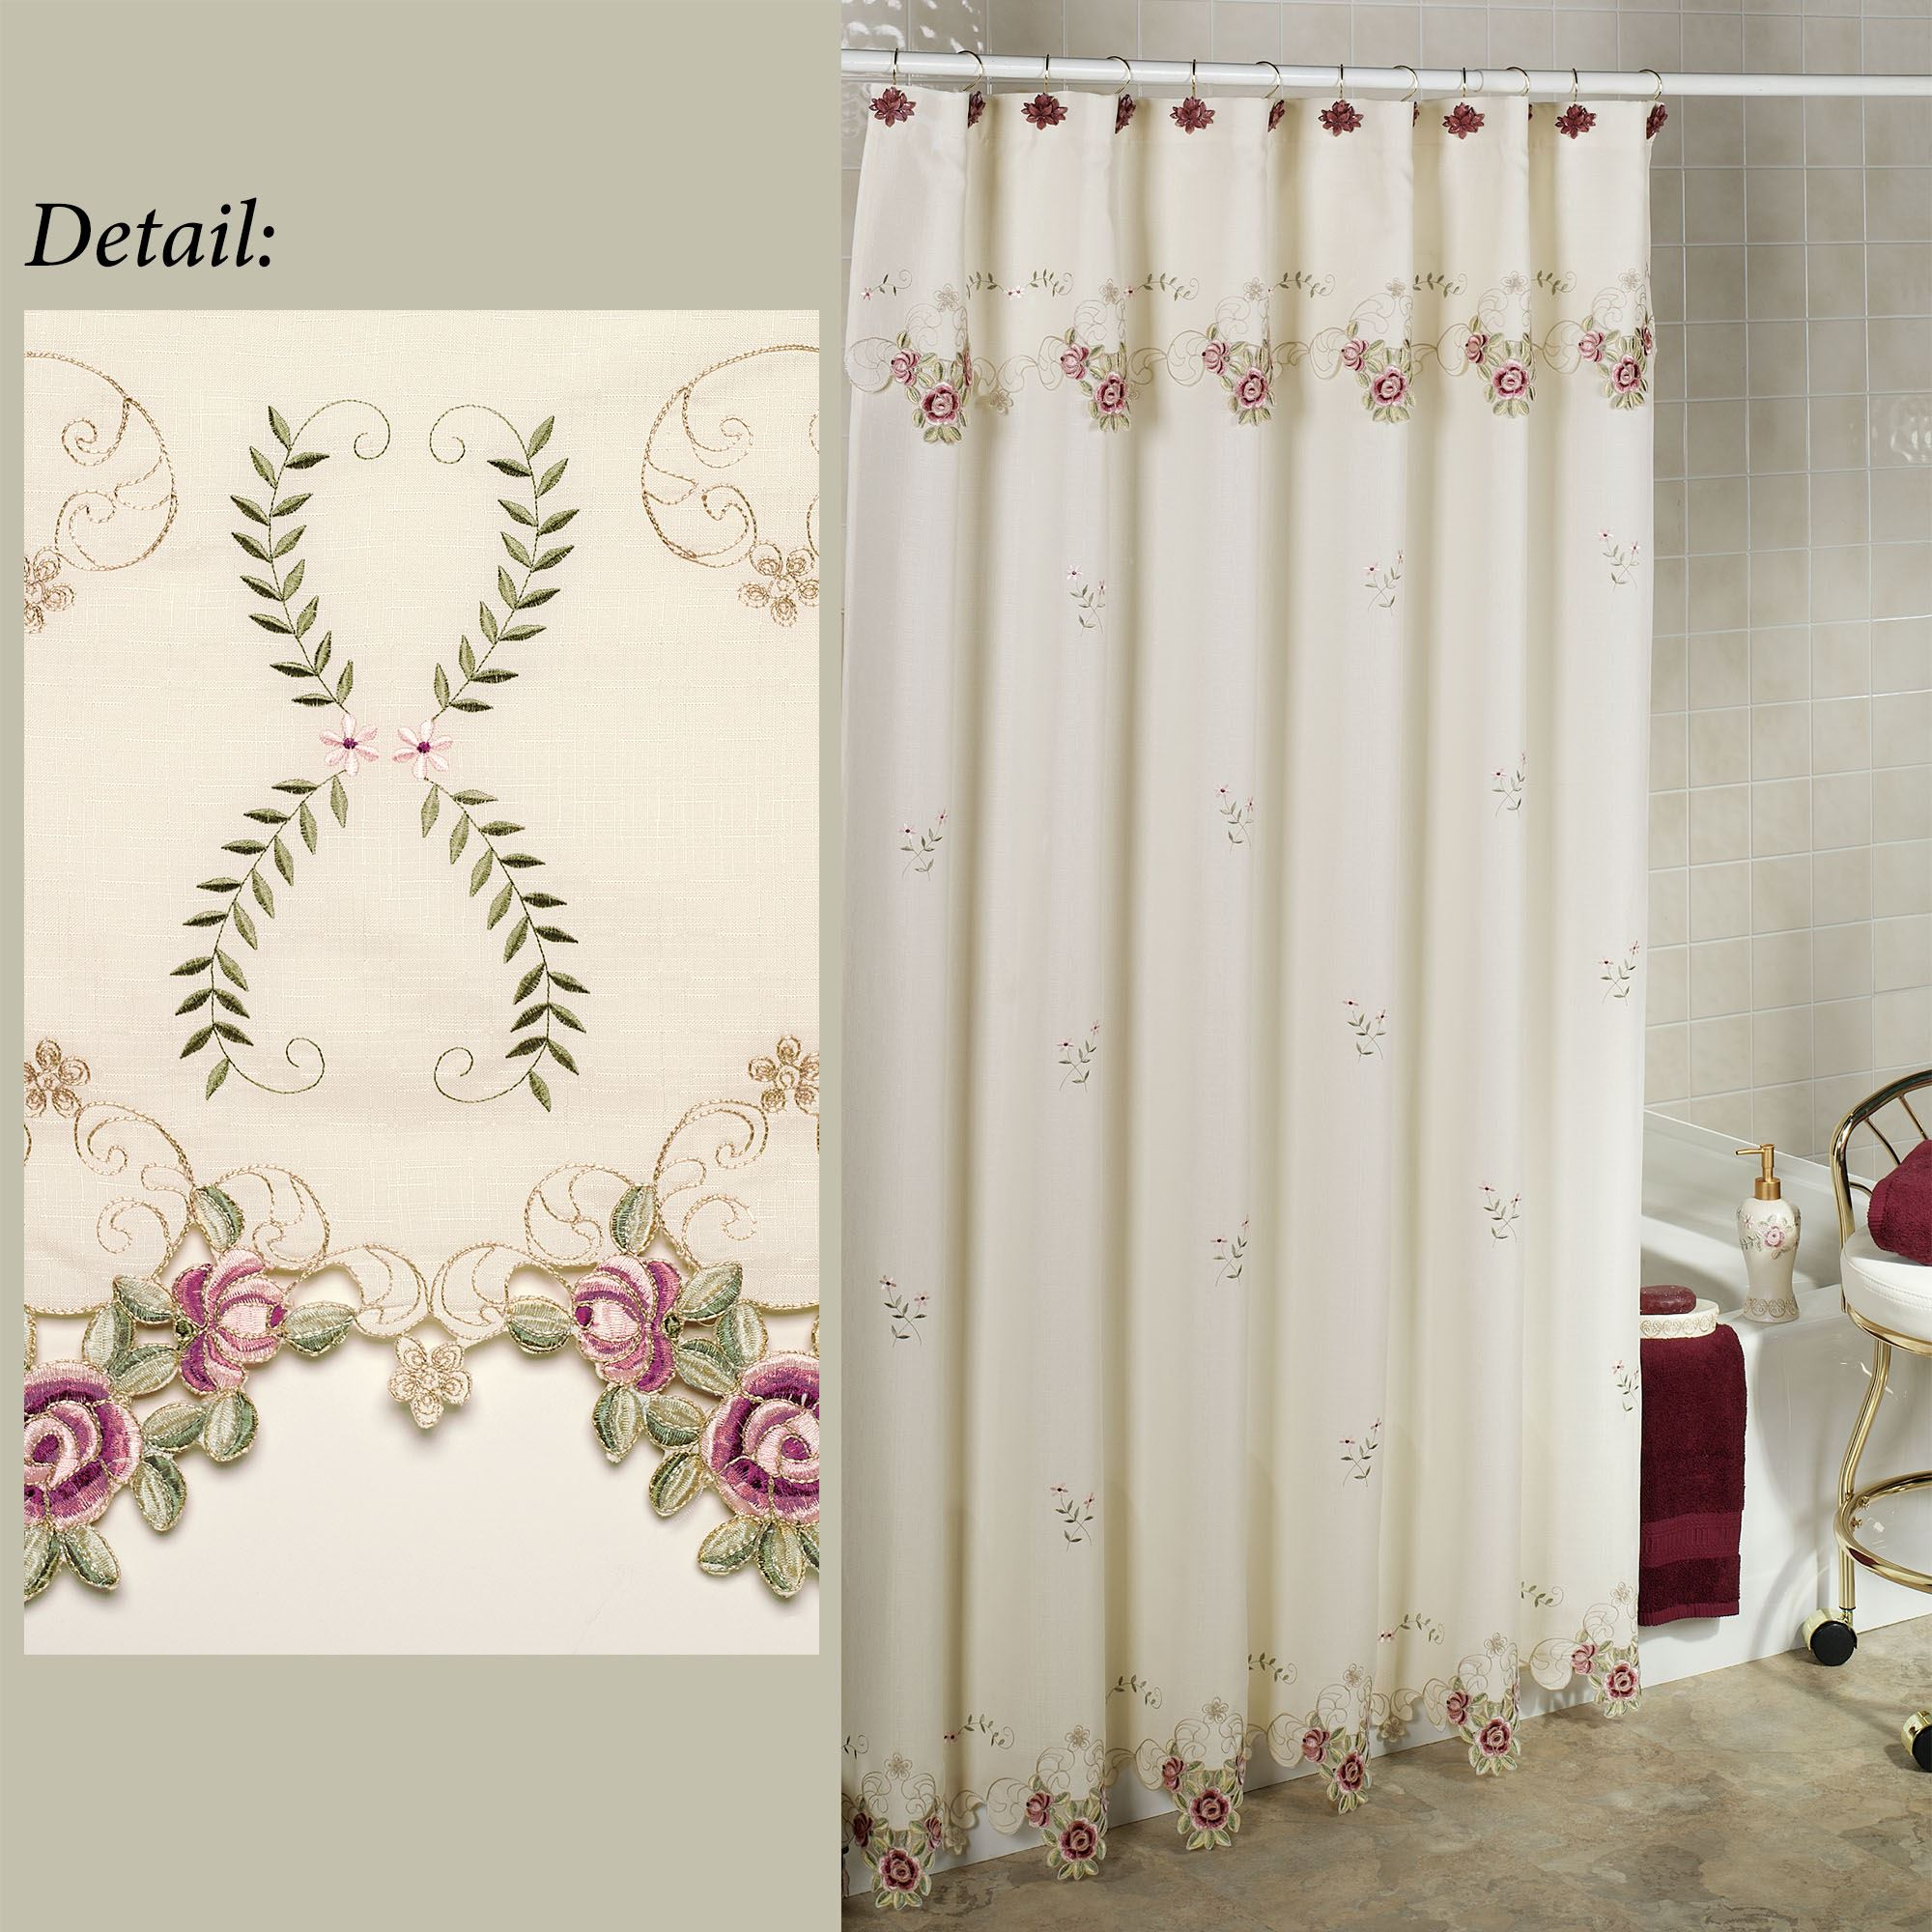 Shower Curtains Sale Bella Rose Shower Curtain